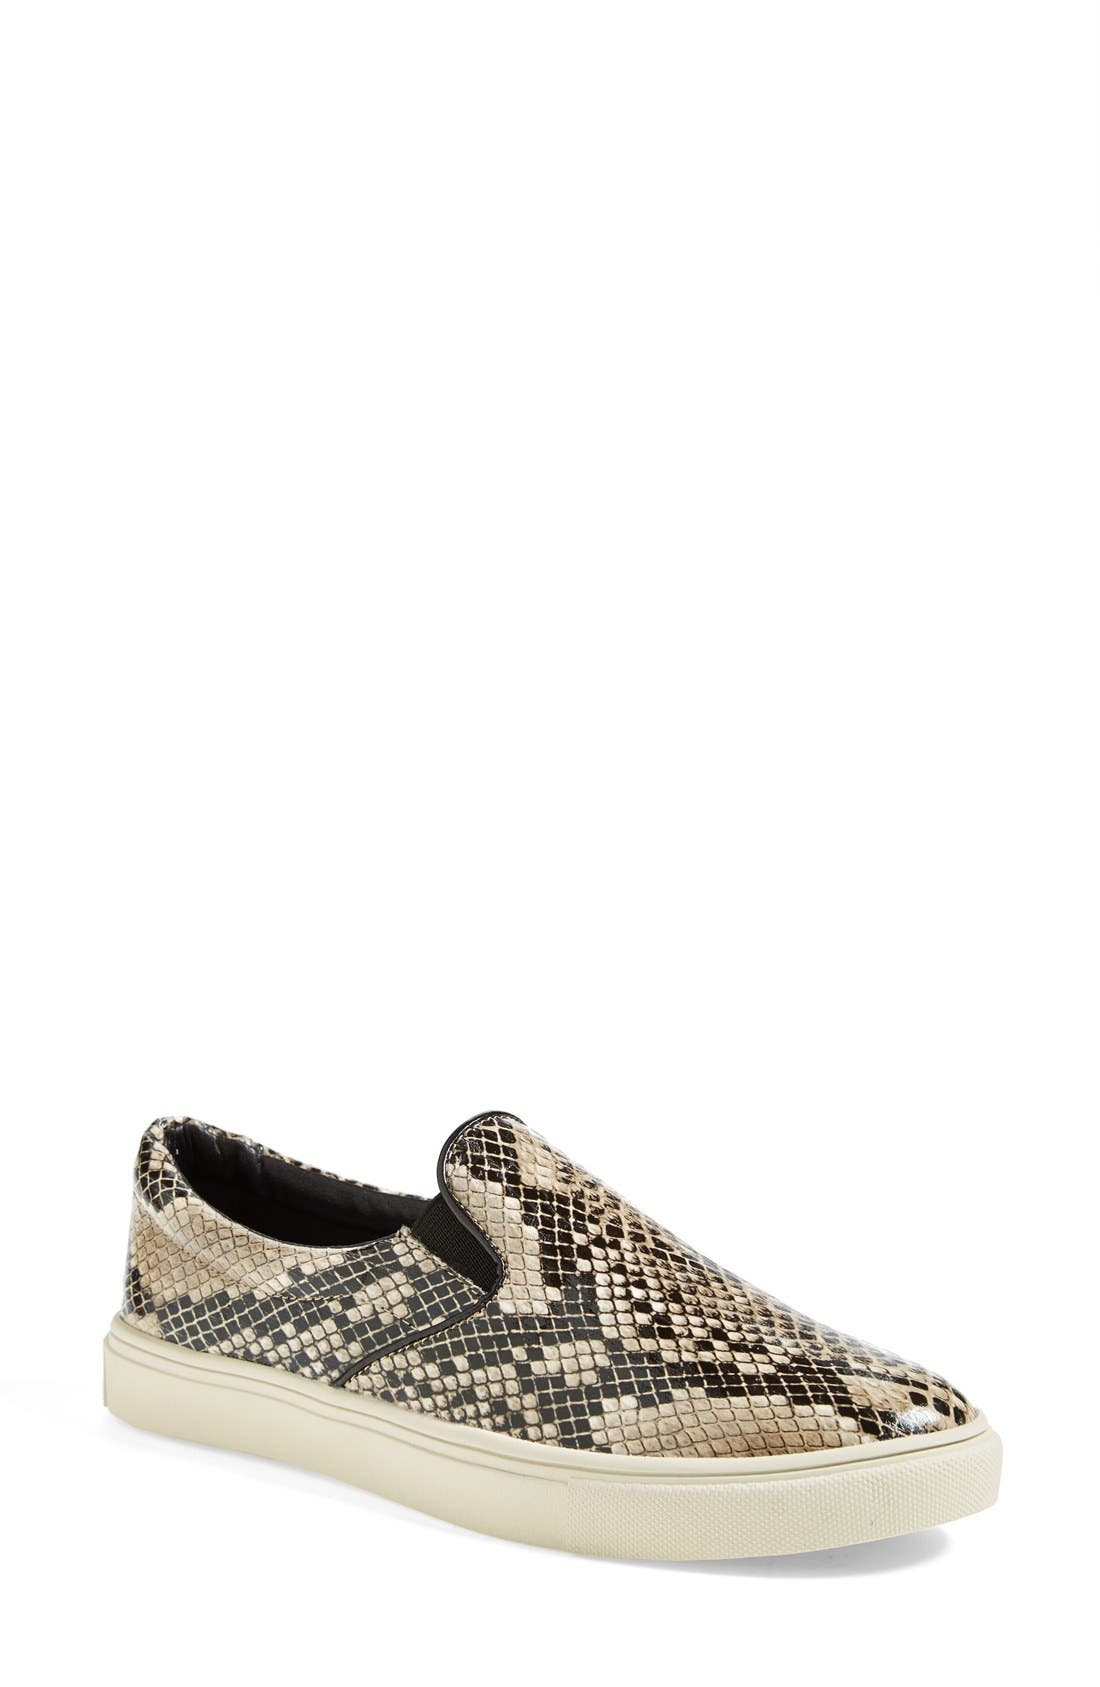 'Ecntrc-c' Snake-Embossed Slip-On Sneaker,                             Main thumbnail 2, color,